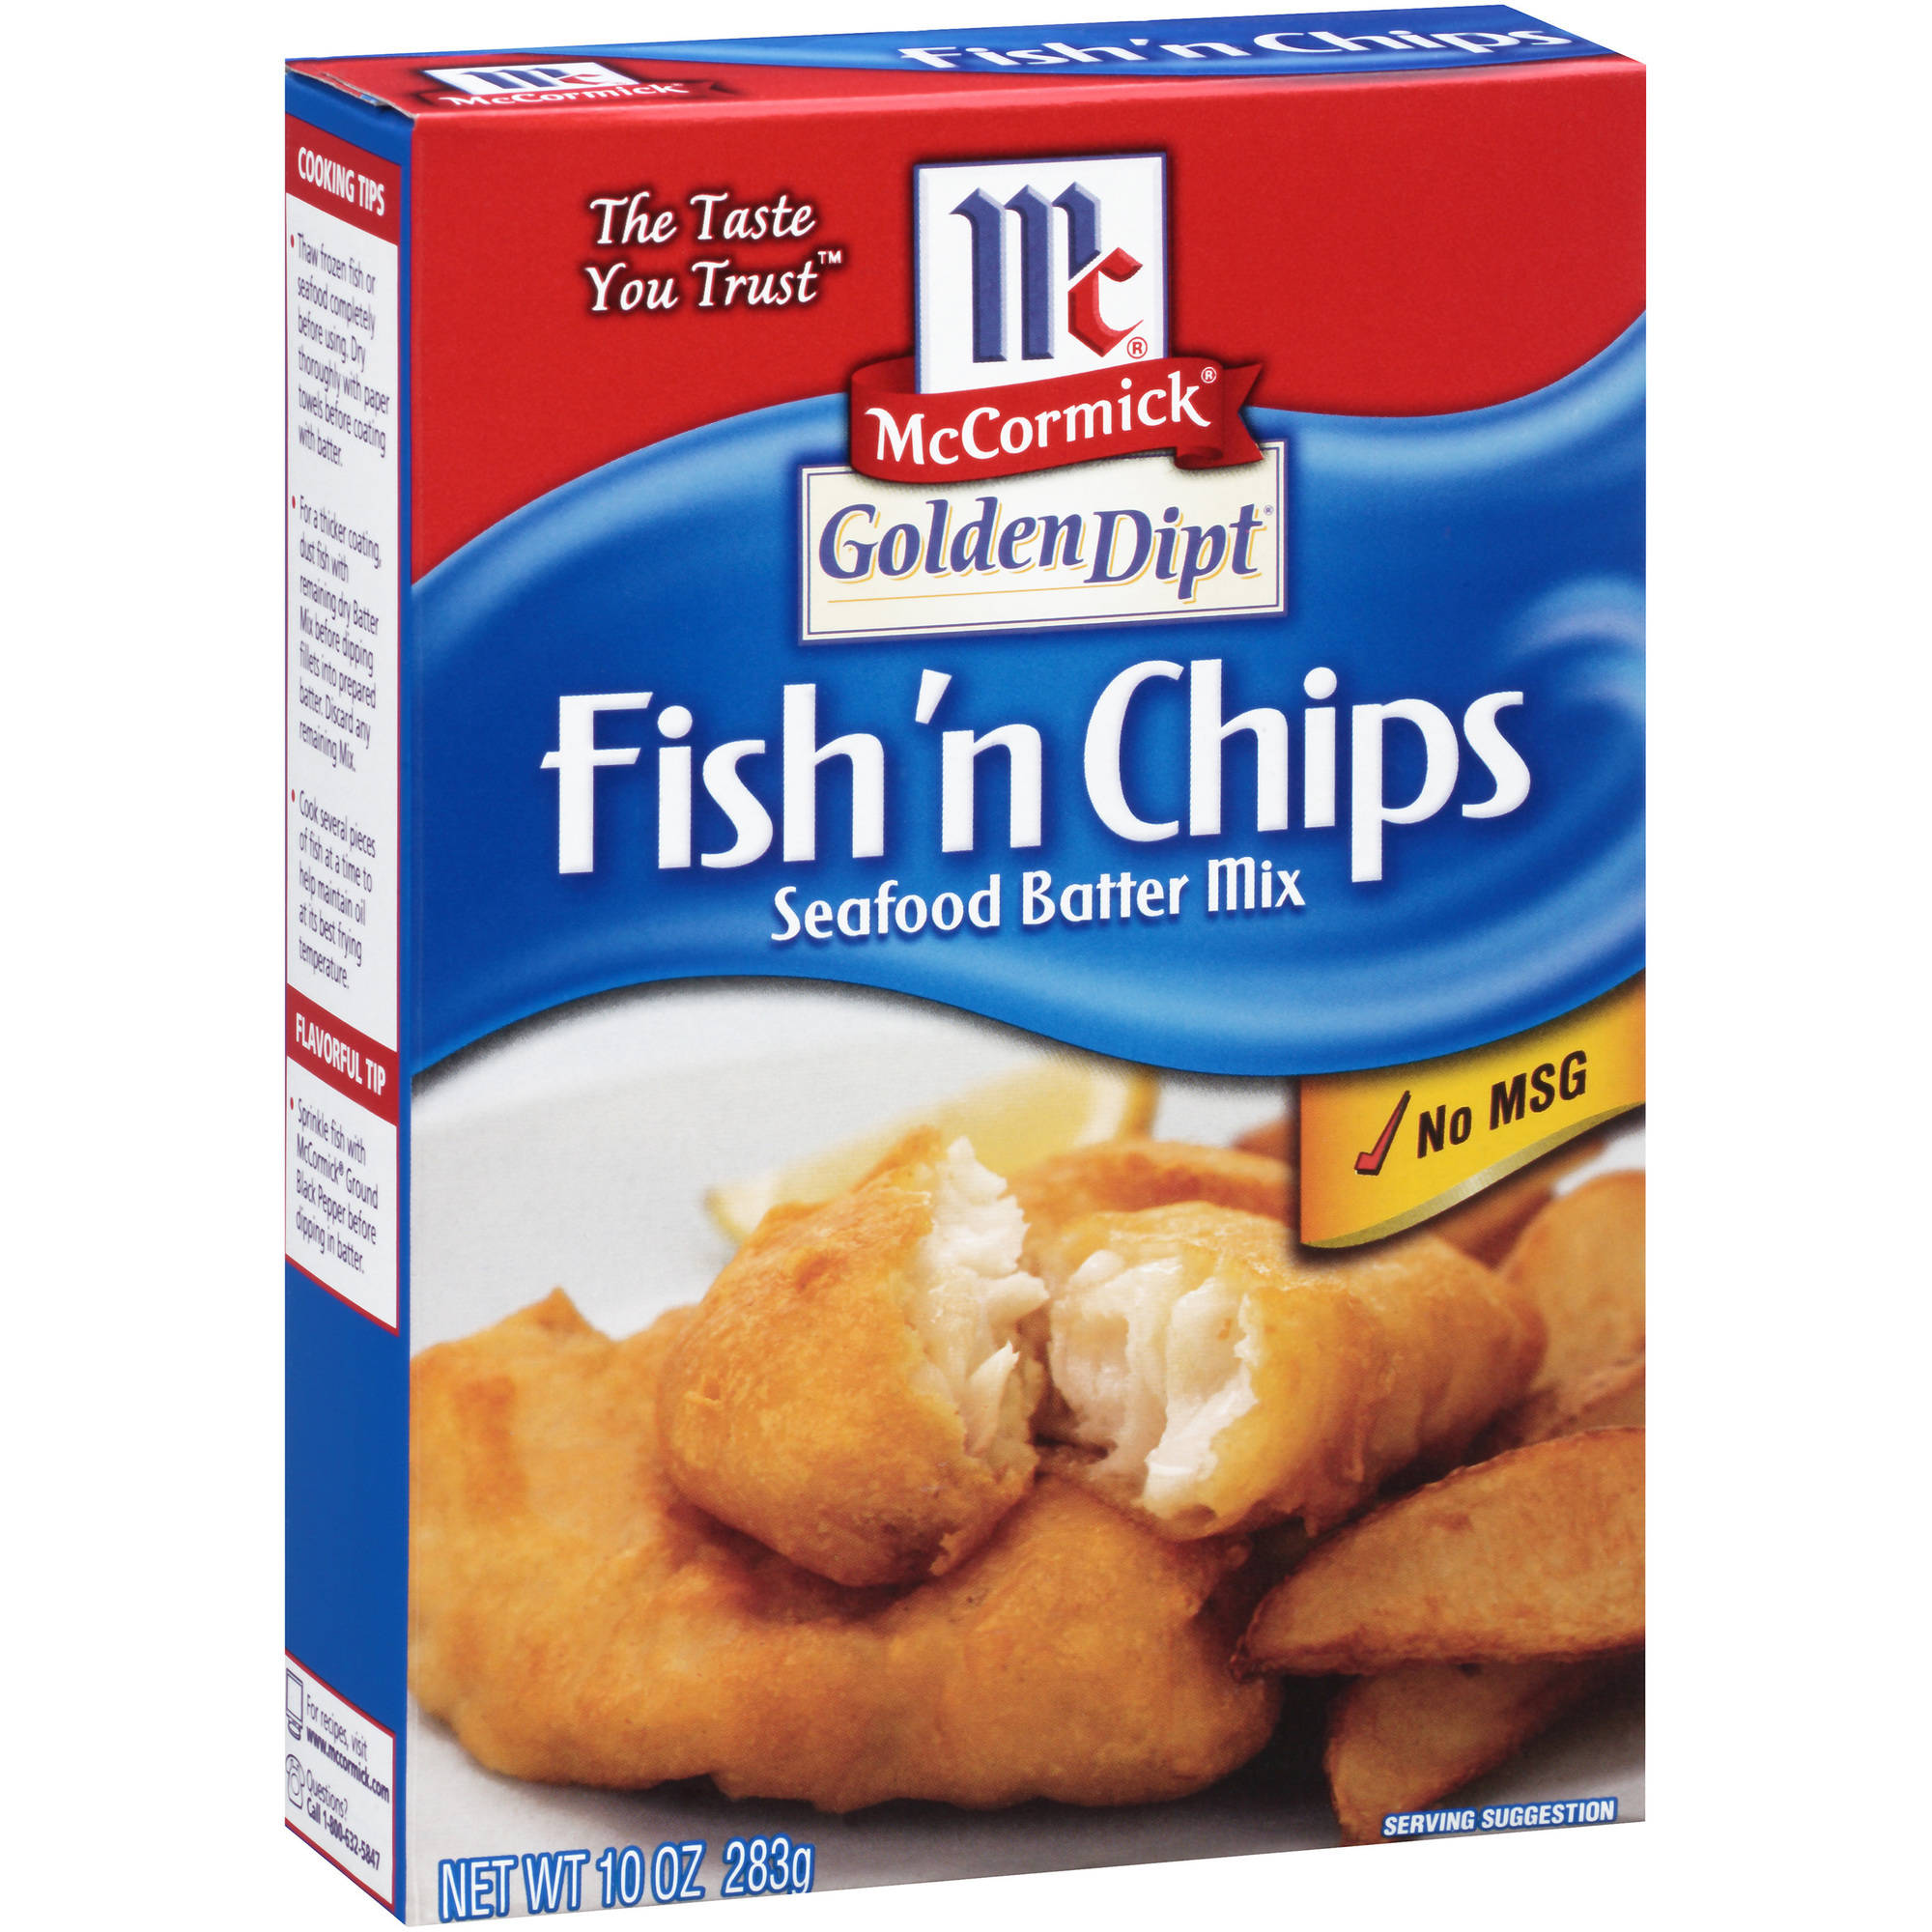 McCormick Golden Dipt Fish 'n Chips Seafood Batter Mix, 10 oz